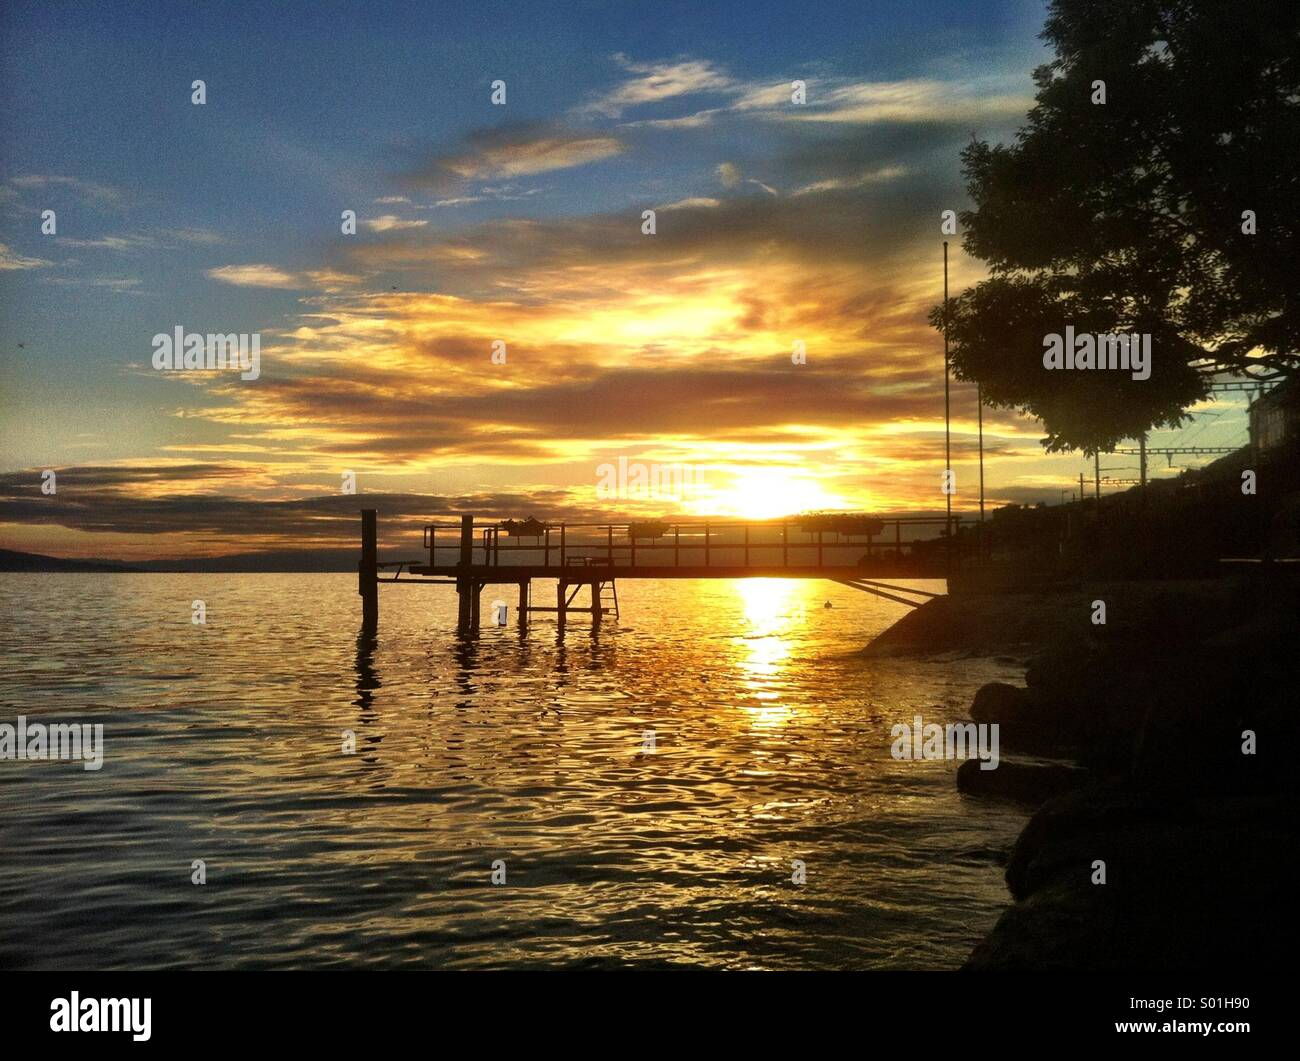 Sunset over a Swiss lake - Stock Image